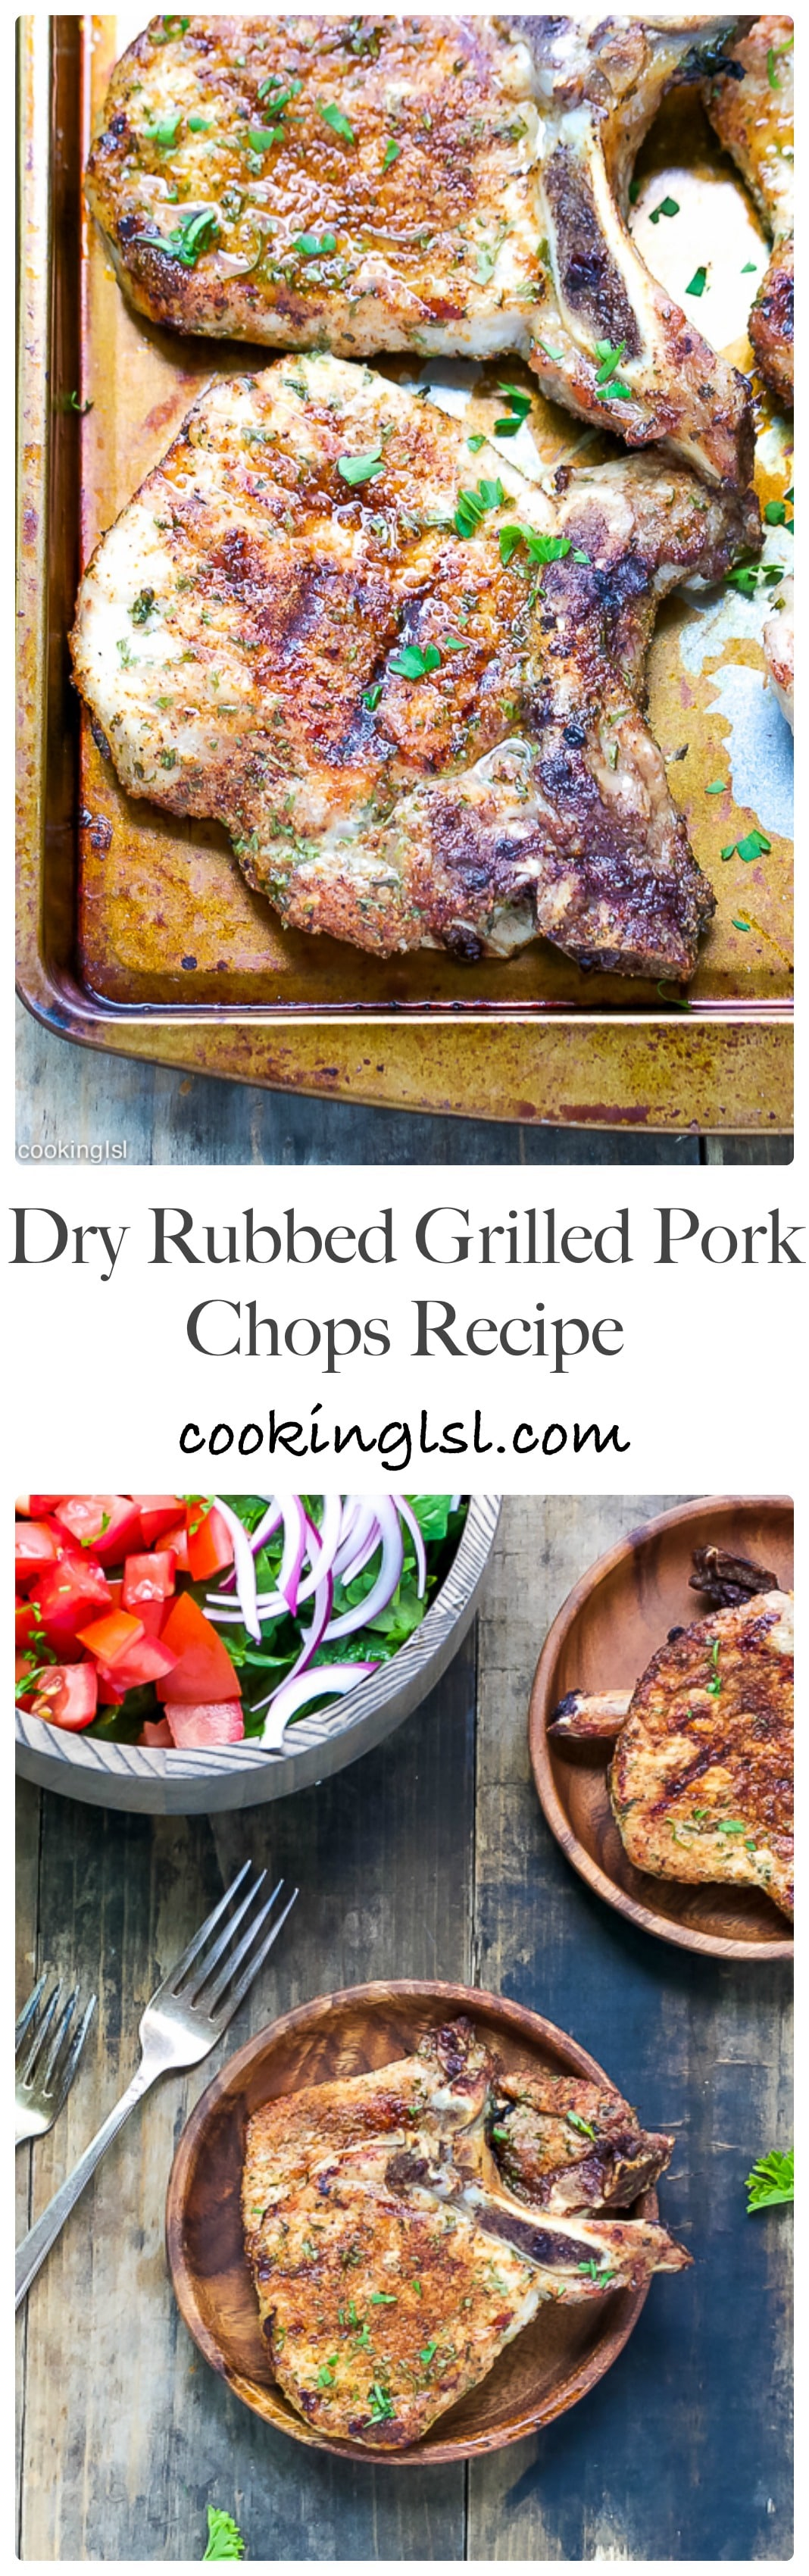 Juicy, flavorful and delicious, these dry rubbed grilled pork chops are perfect for a weekend barbecue or a quick weeknight dinner.